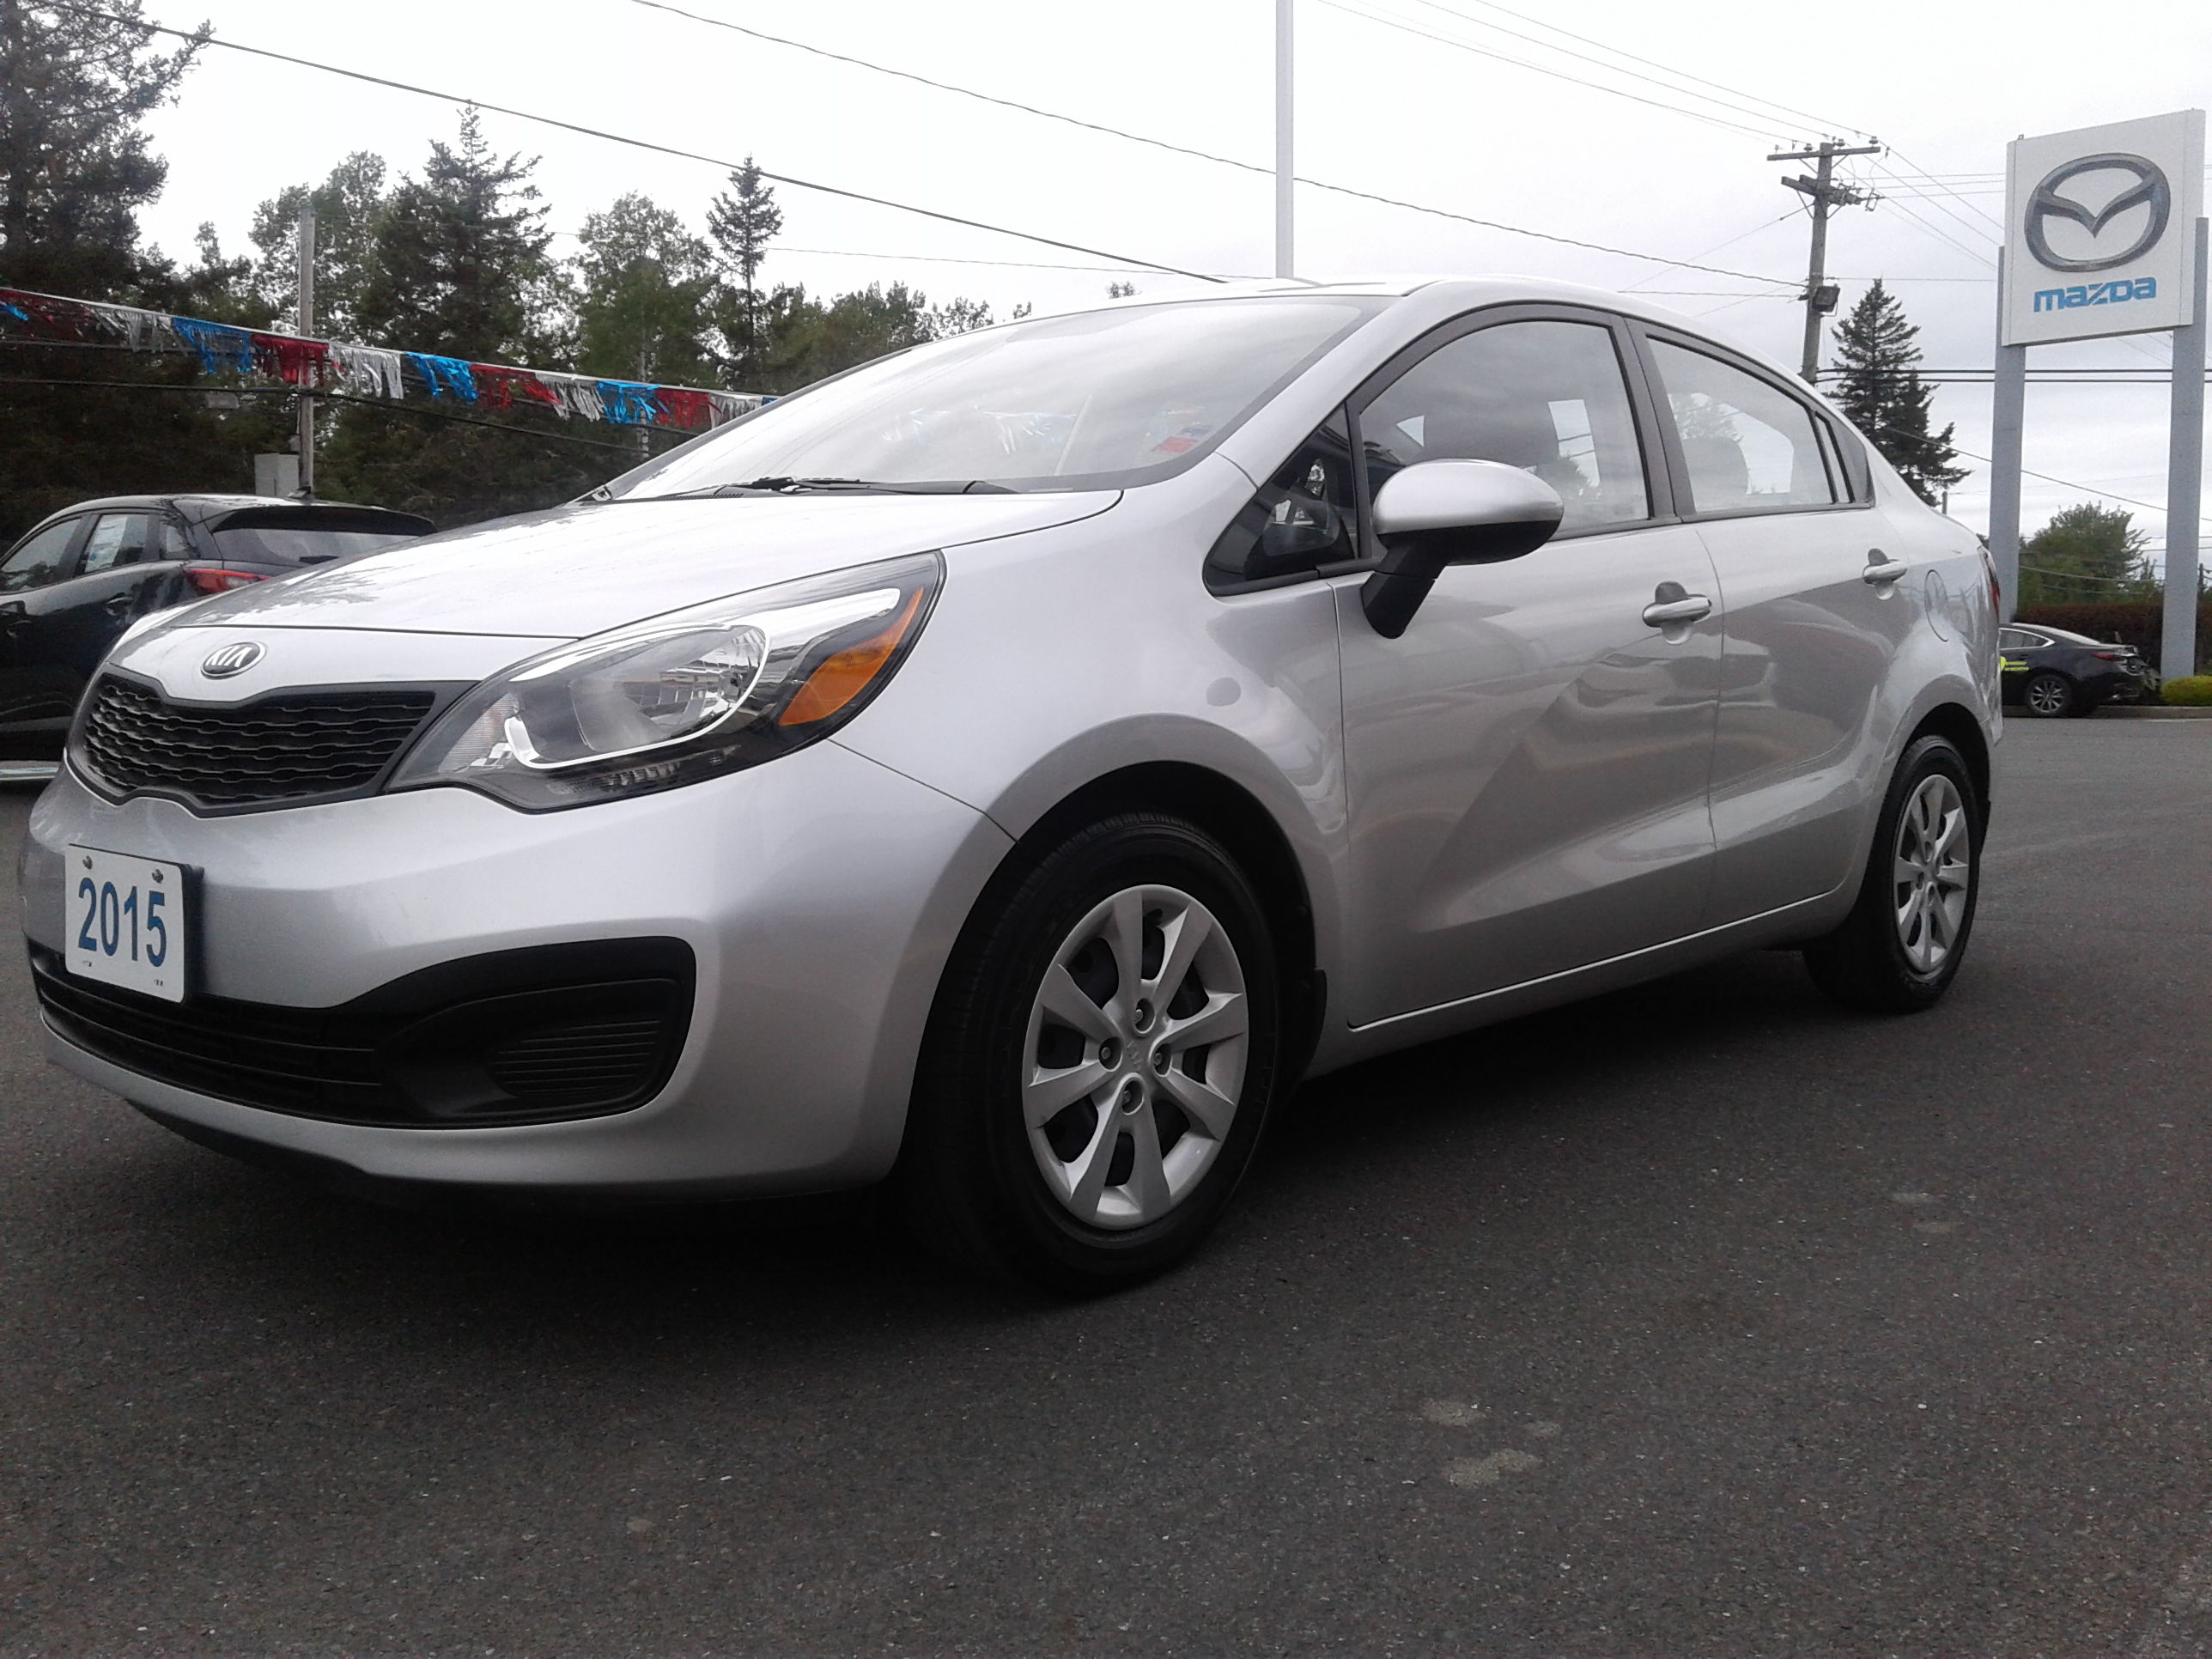 bayside mazda pre owned 2015 kia rio lx for sale. Black Bedroom Furniture Sets. Home Design Ideas